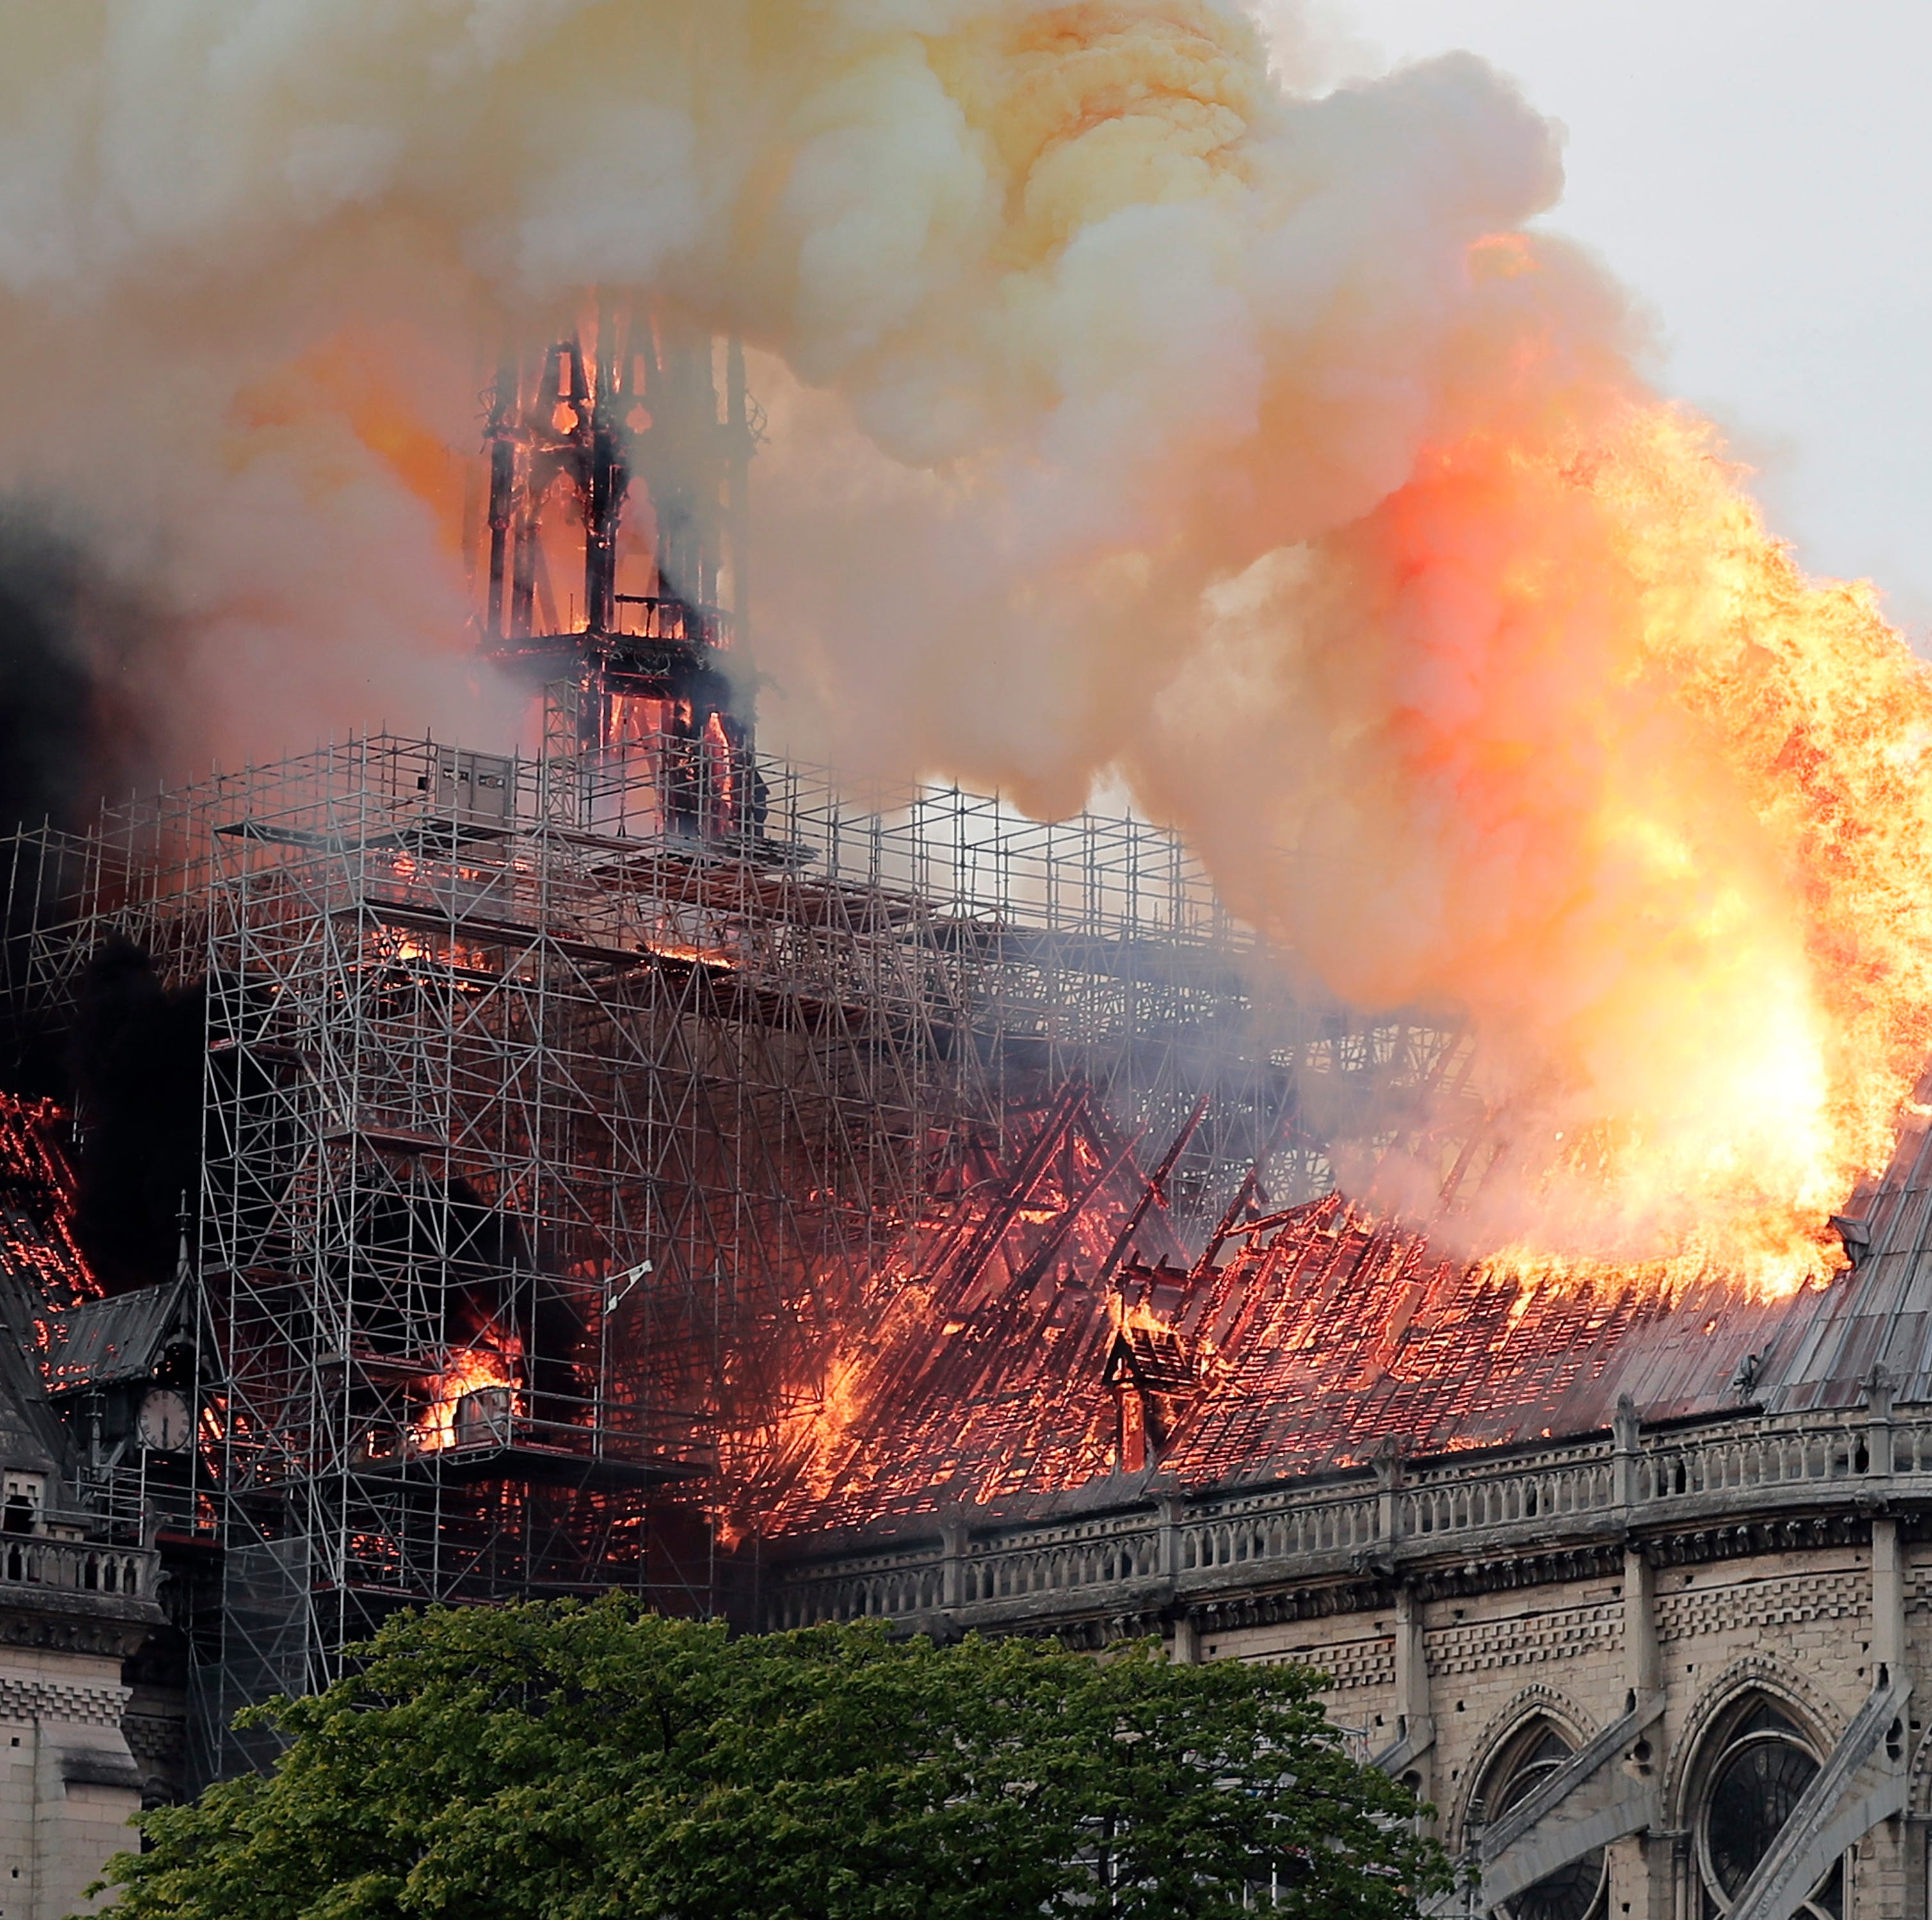 Indianapolis couple in Paris as Notre Dame cathedral burns: 'The ashes fell like tears'